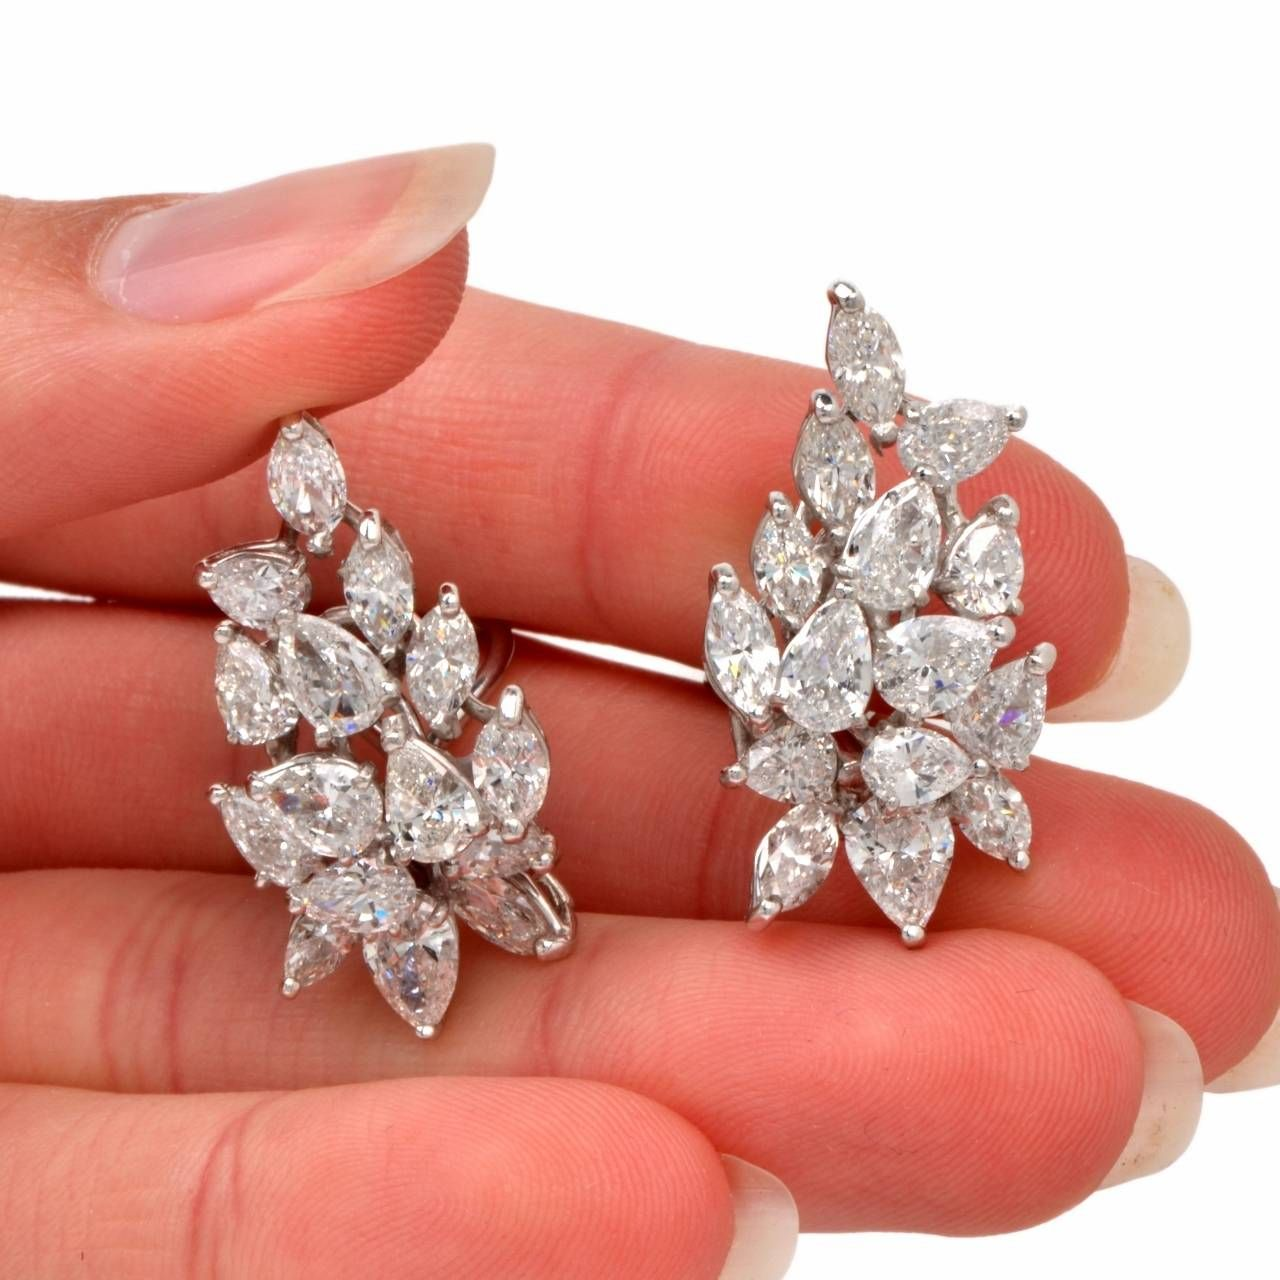 New Flower Style Clip Earrings Cubic Zirconia Platinum//Rose Gold//Gold Plated Earrings Good Gifts